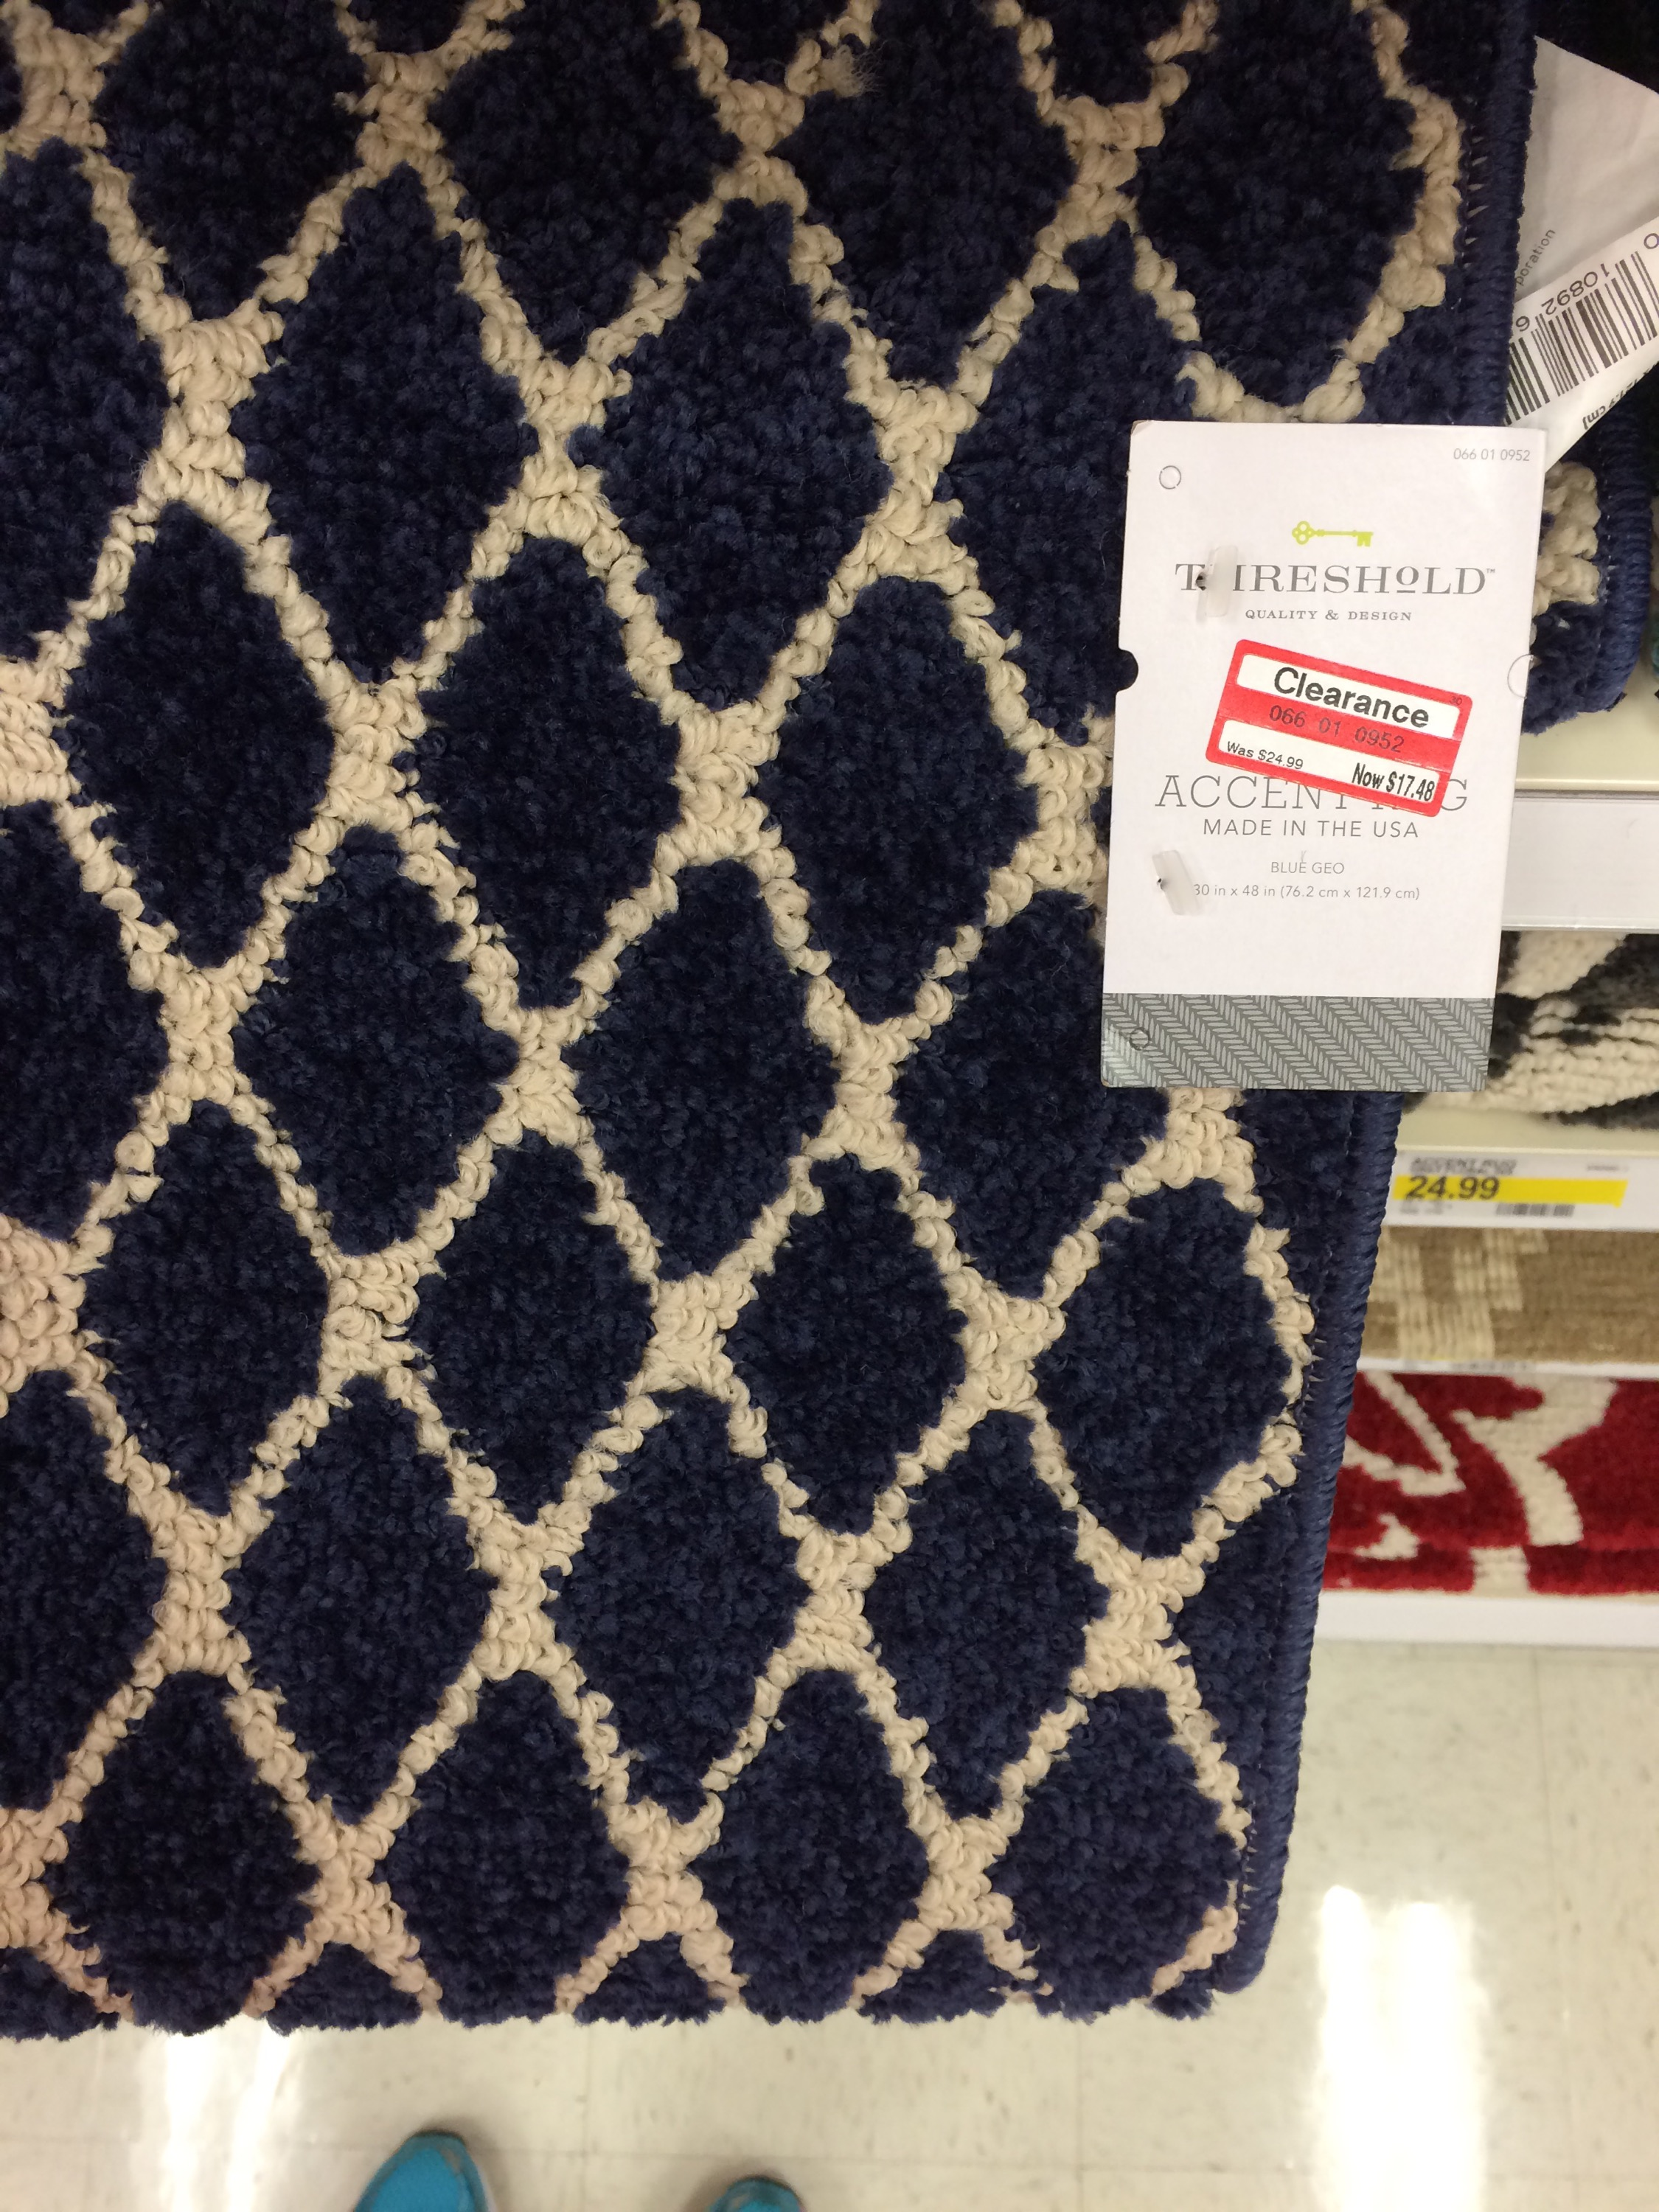 Target Clearance Accent Rugs 30 50 Off Placemats 70 Plus An Extra 15 Cartwheel